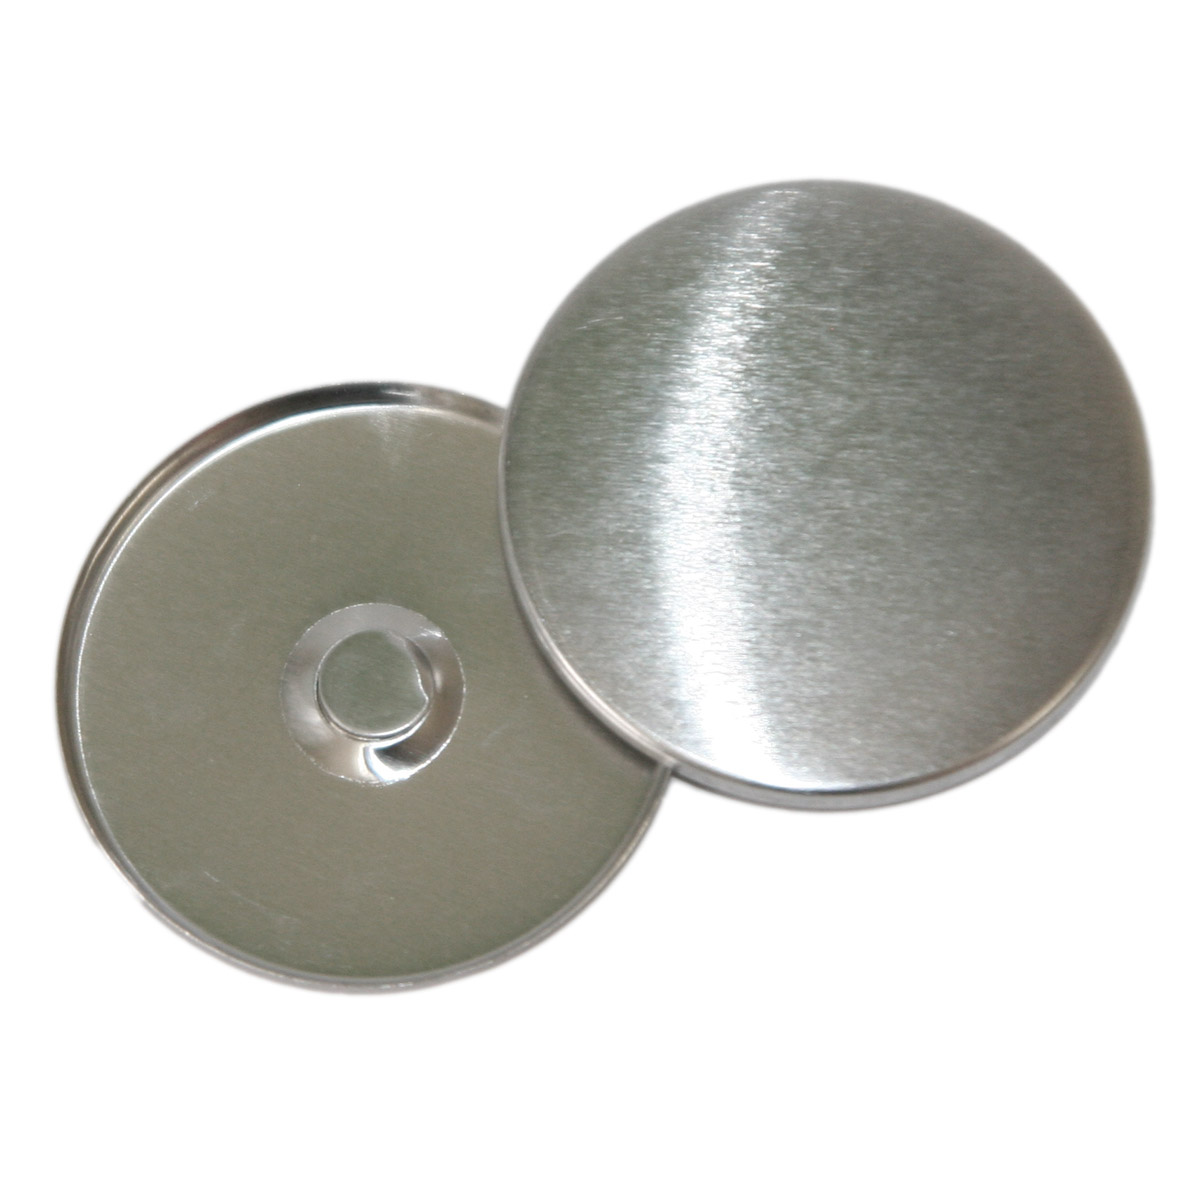 Components to badge machine with neodymium magnet